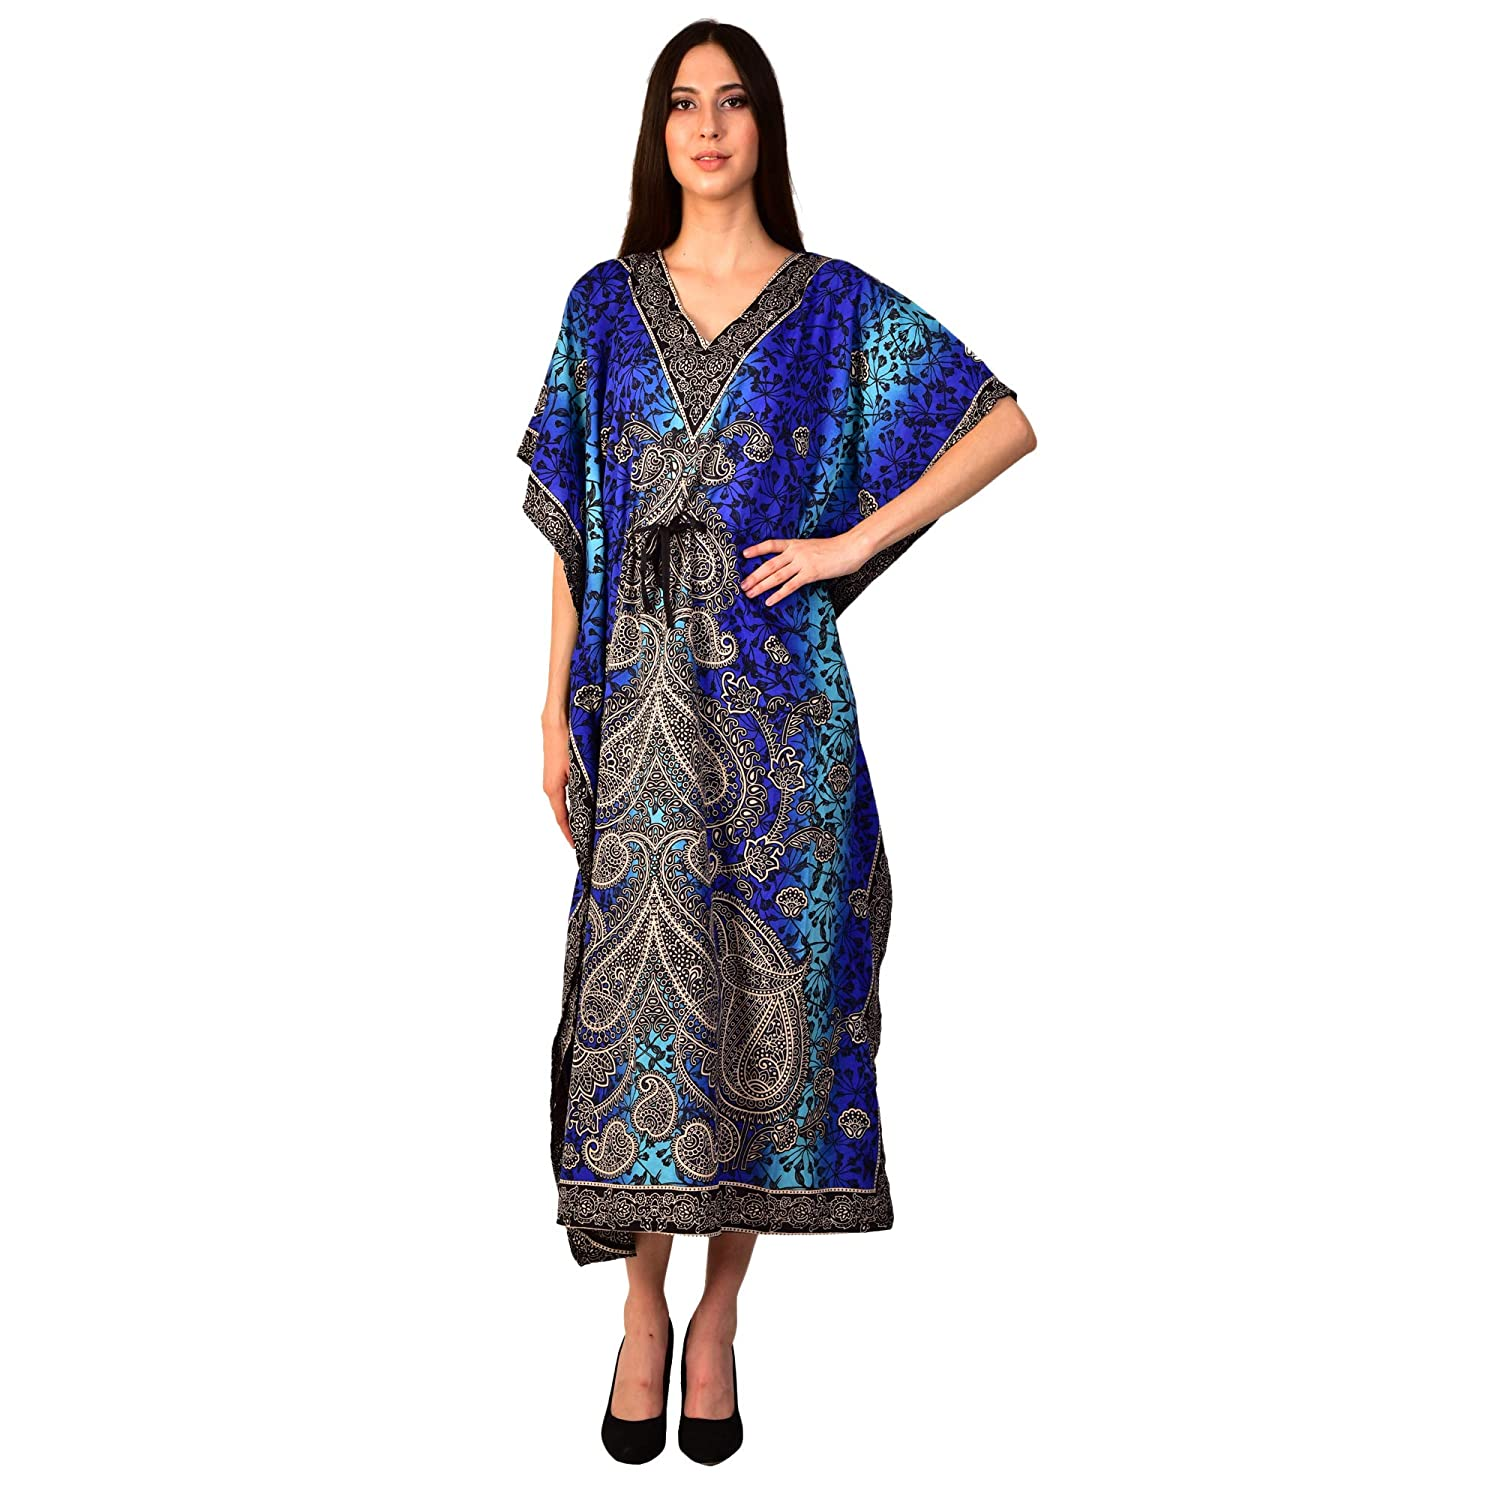 Great Gatsby Dress – Great Gatsby Dresses for Sale eloria Womens Paisley Print Blue Kaftan Maxi Dress Summer Beach Dress Caftan $10.99 AT vintagedancer.com